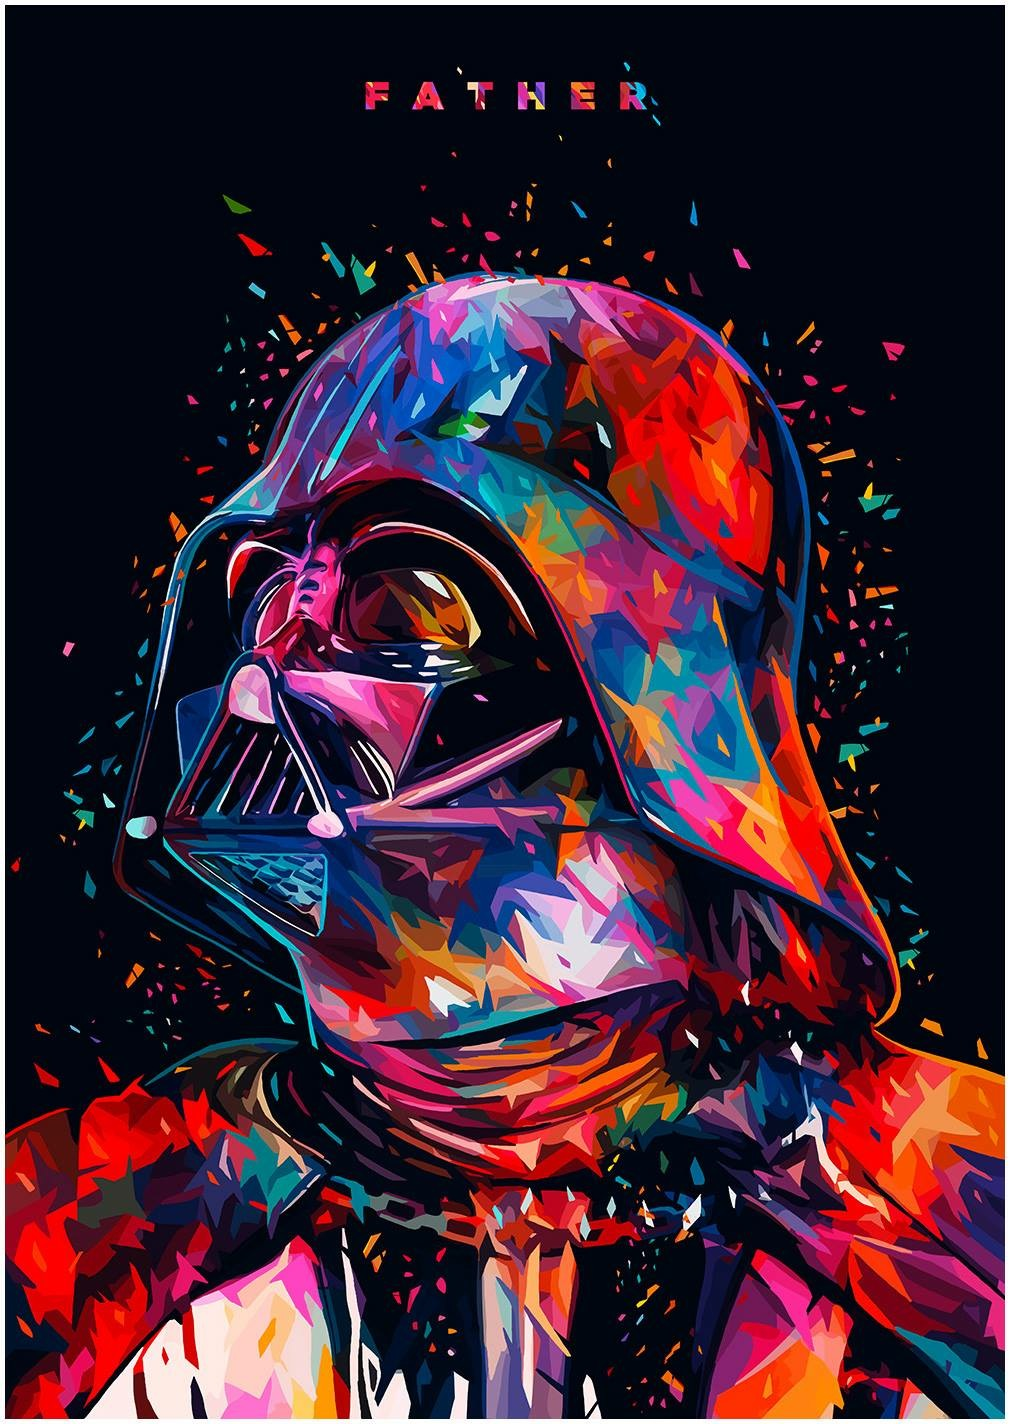 abaeedfadfffd-star-wars-stuff-art-illustrations-wallpaper-wp3002295